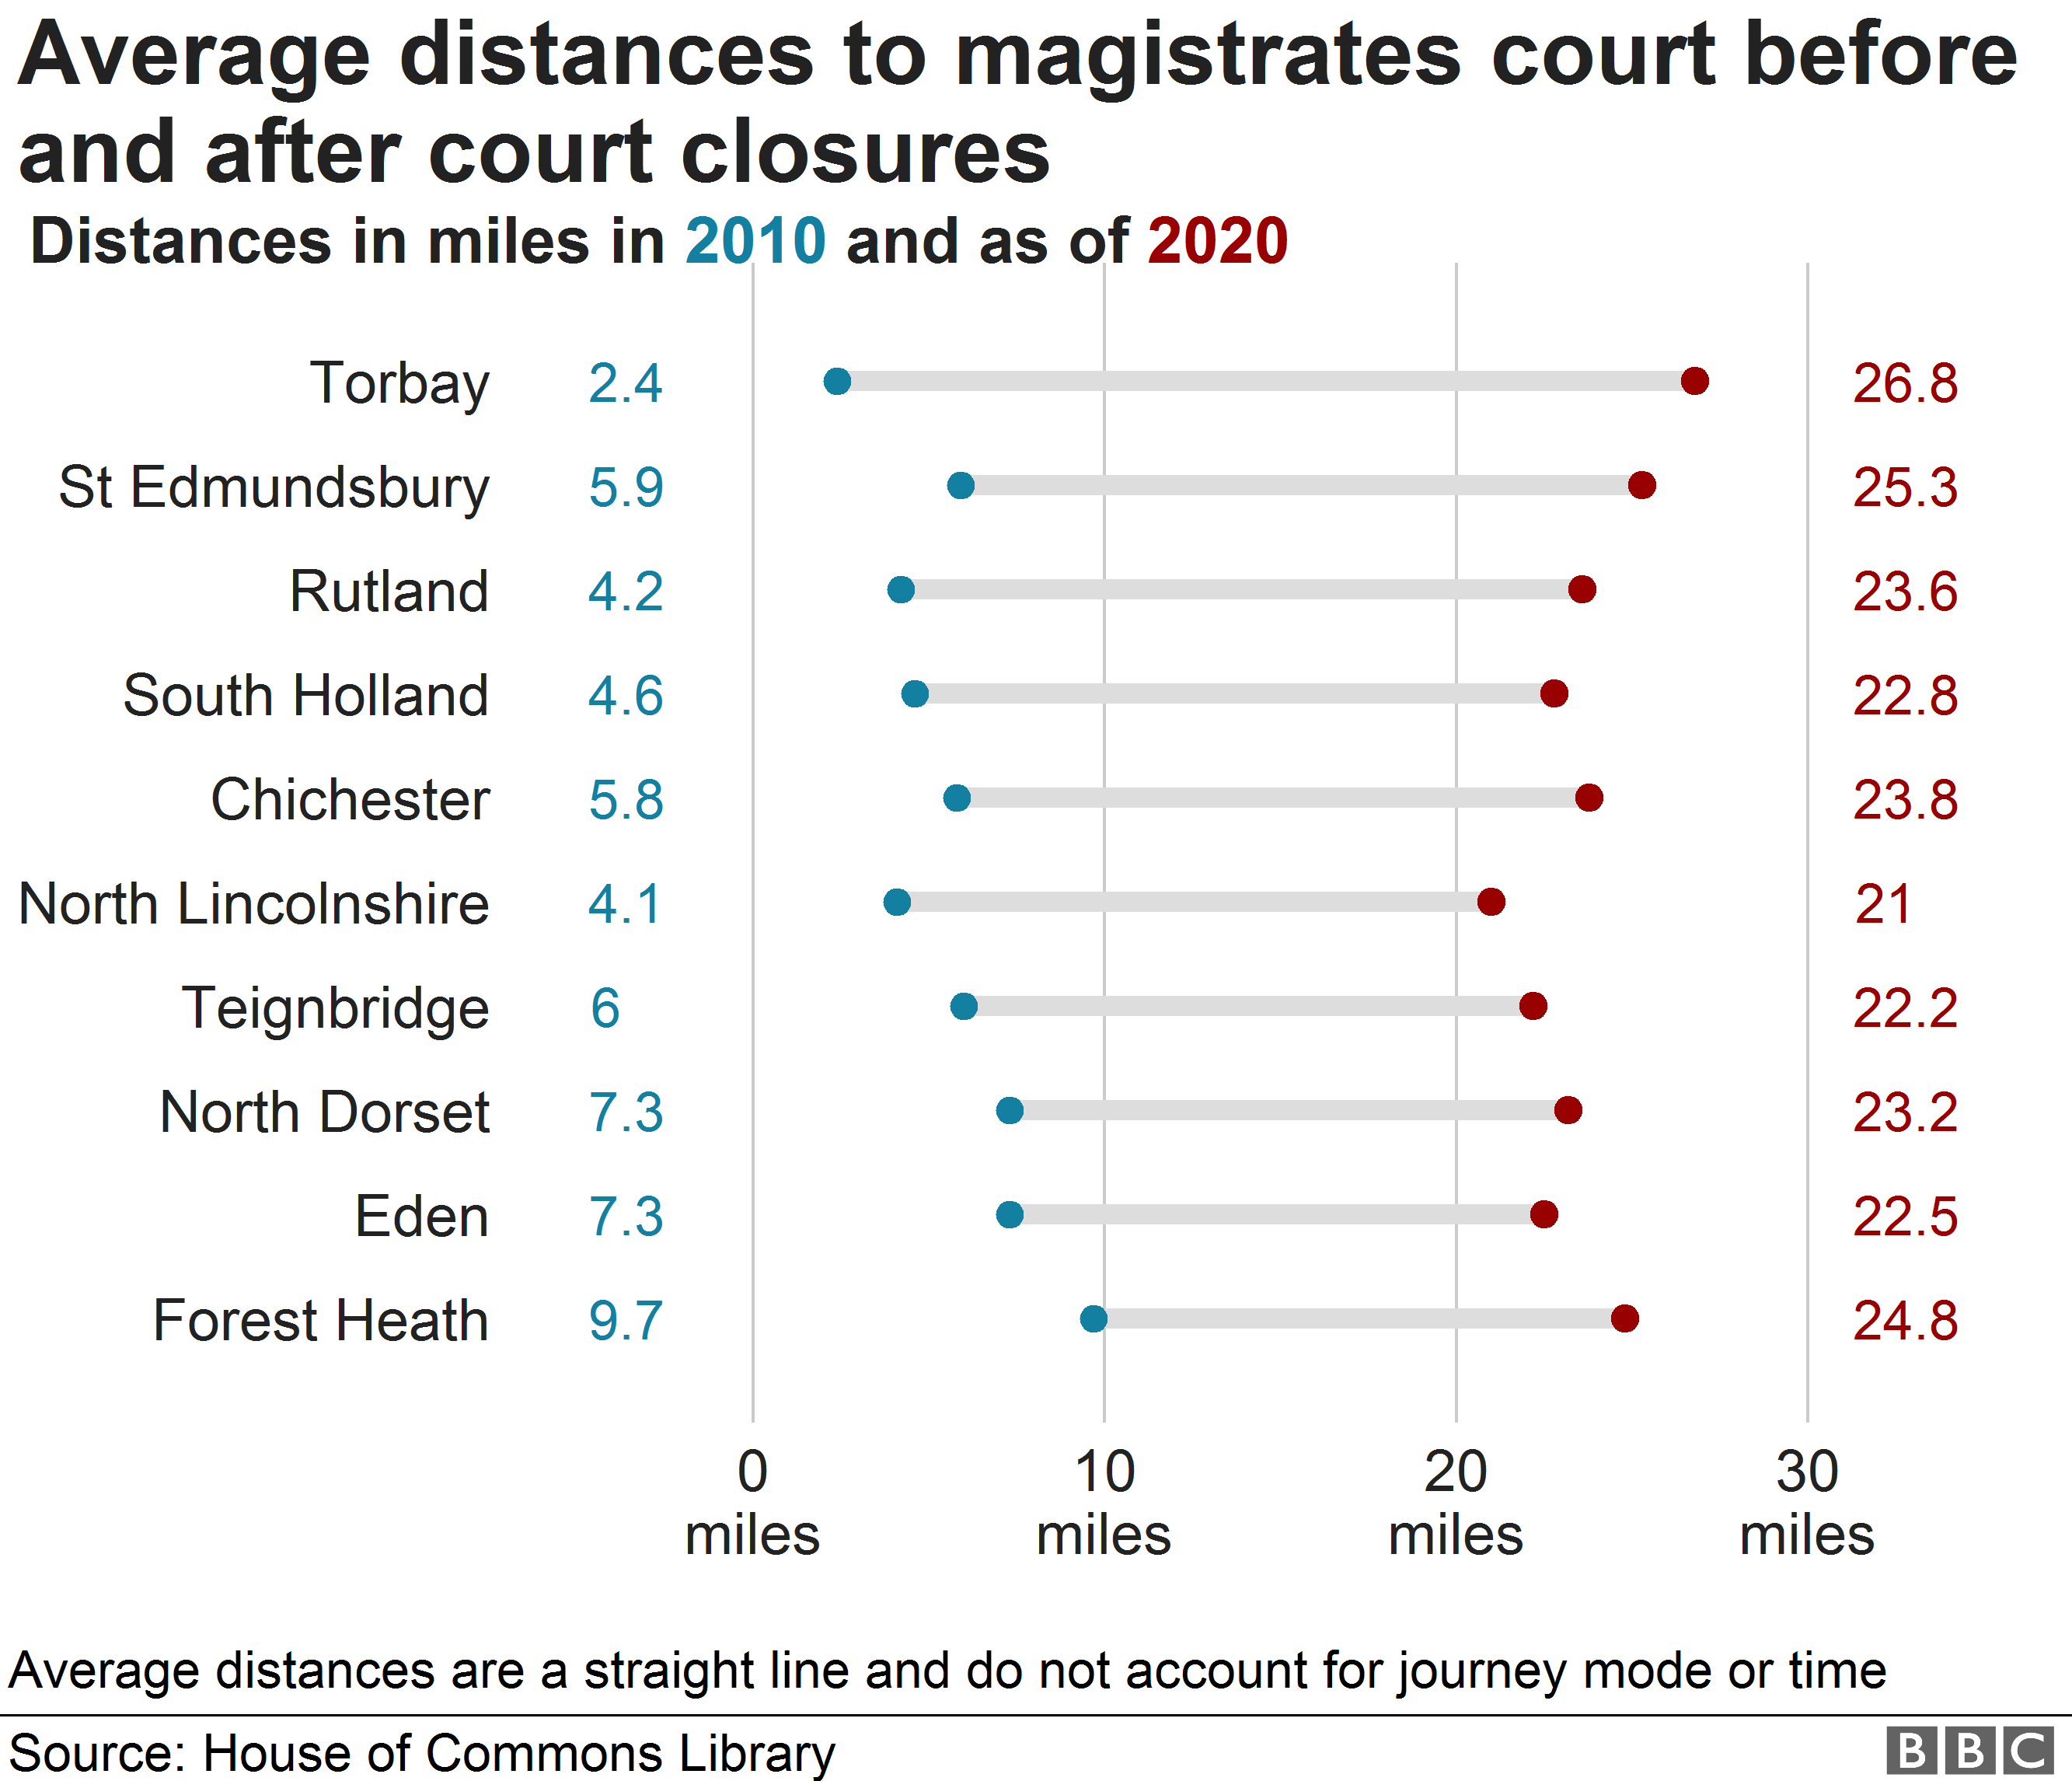 Chart showing the increase in average distance to nearest Magistrates' Court due to court closures based on House of Commons data. Torbay is the district with the biggest increase in distance, which is now 26.8 miles.